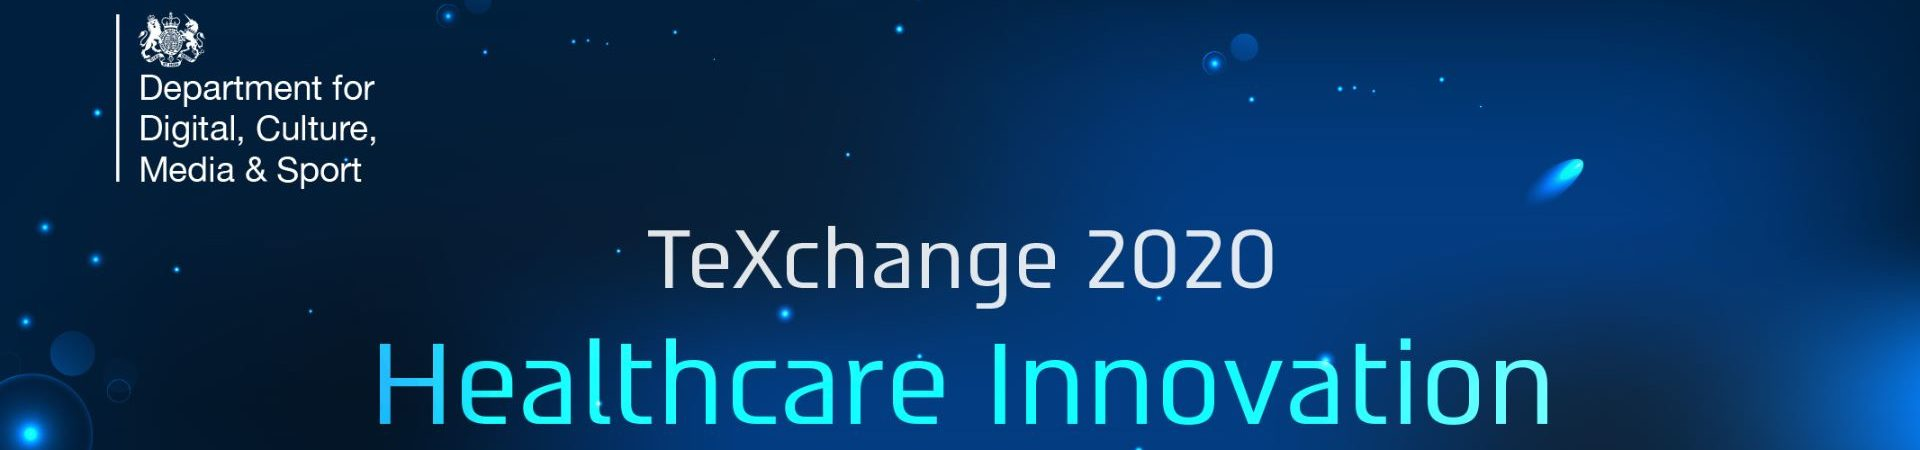 Texchange 2020 Heathcare Innovation Programme